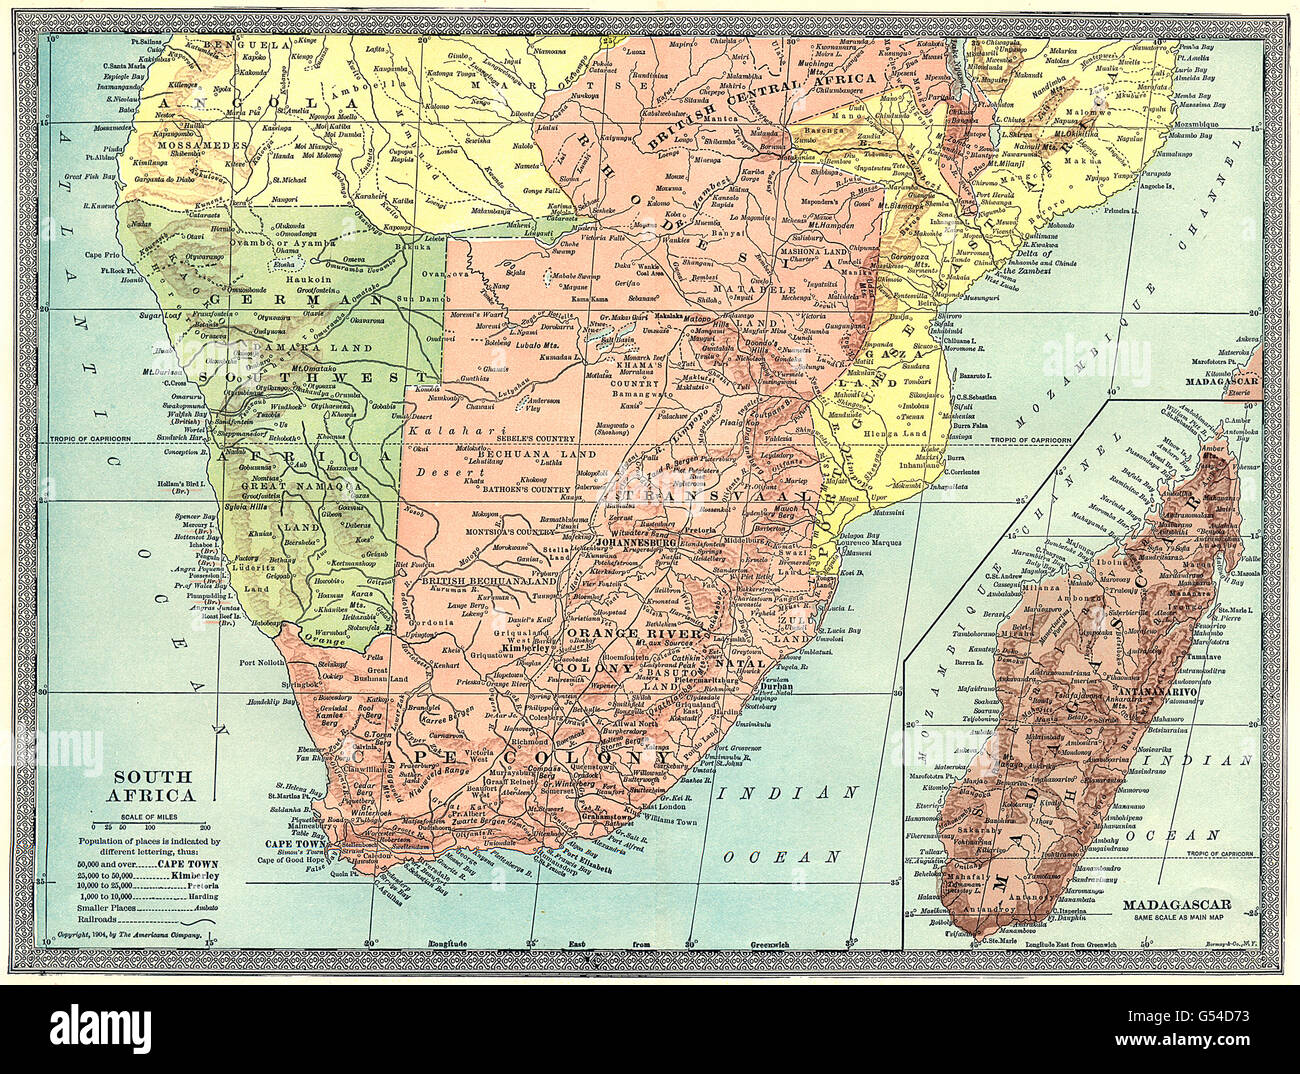 Southwest Africa Map.Colonial Southern Africa Rhodesia German Southwest Africa Stock